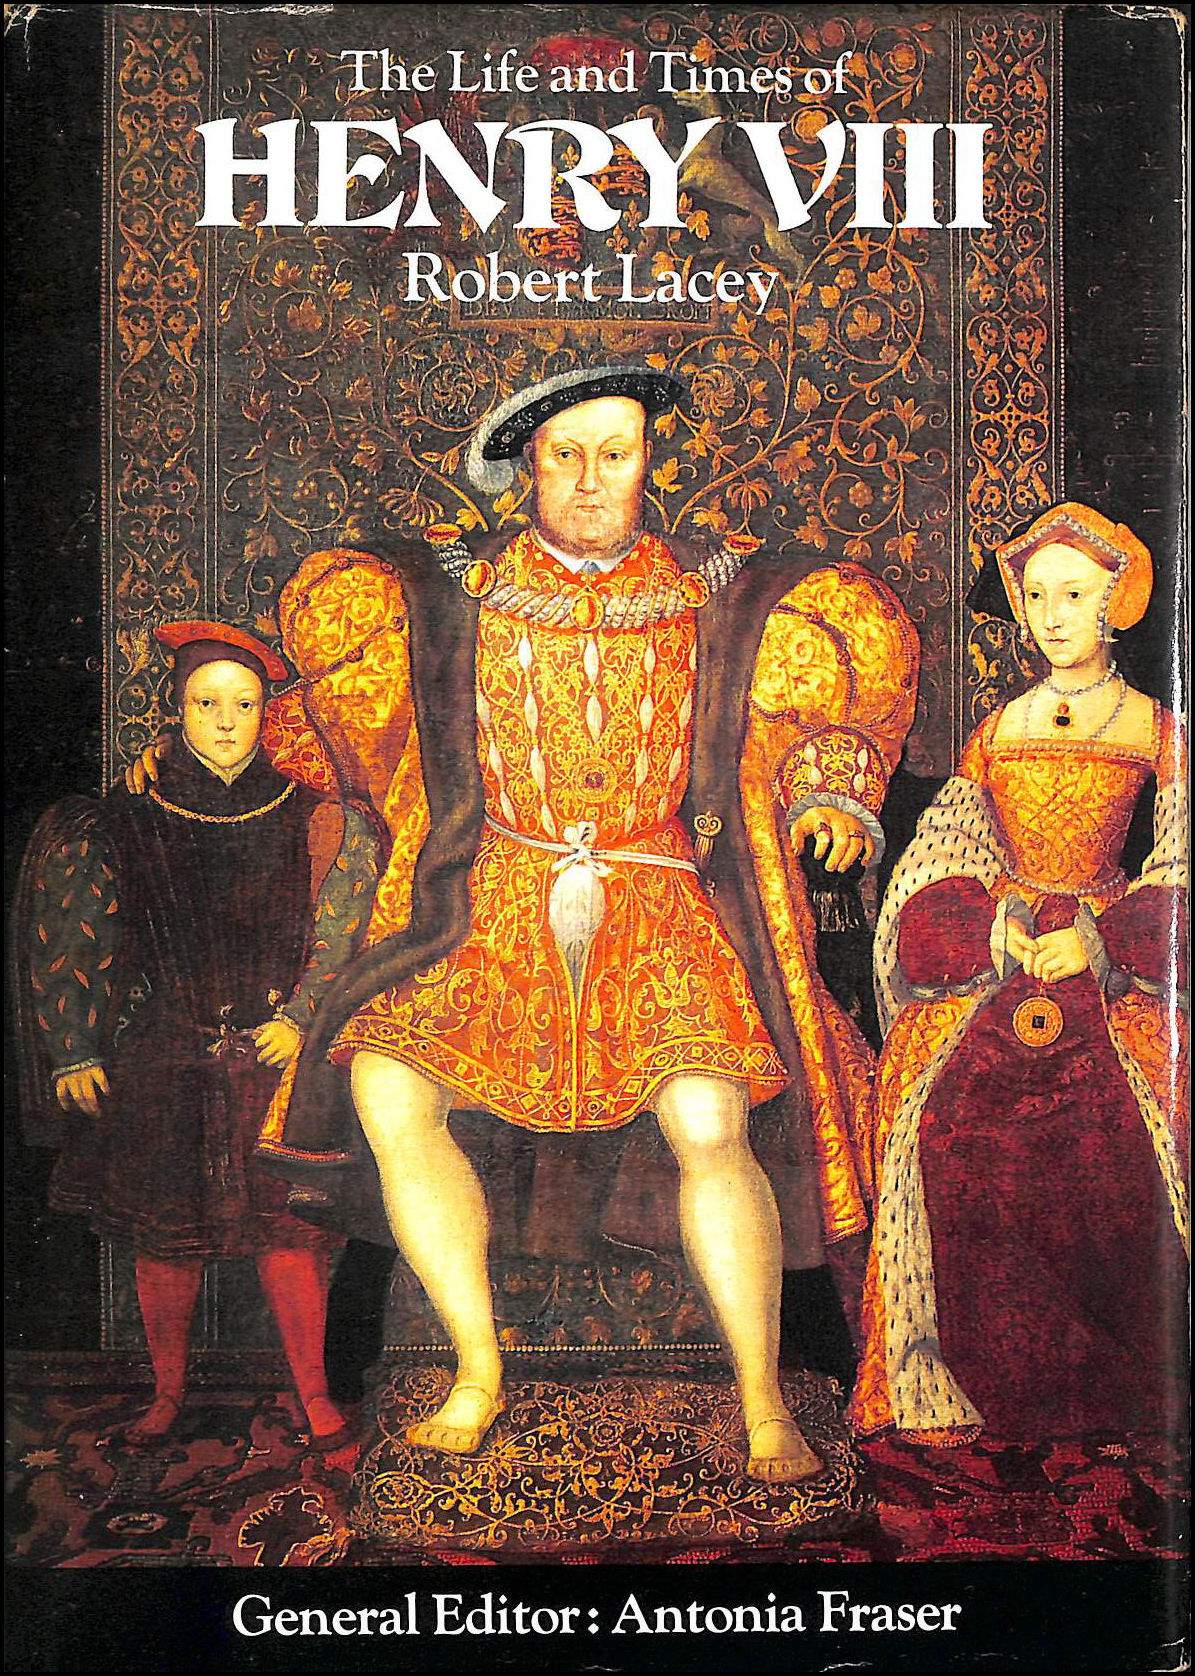 the life and times of henry viii of england Get this from a library the life and times of henry viii [robert lacey] -- tells the story of henry viii who raised the english monarchy to a pinnacle of arbitrary power.